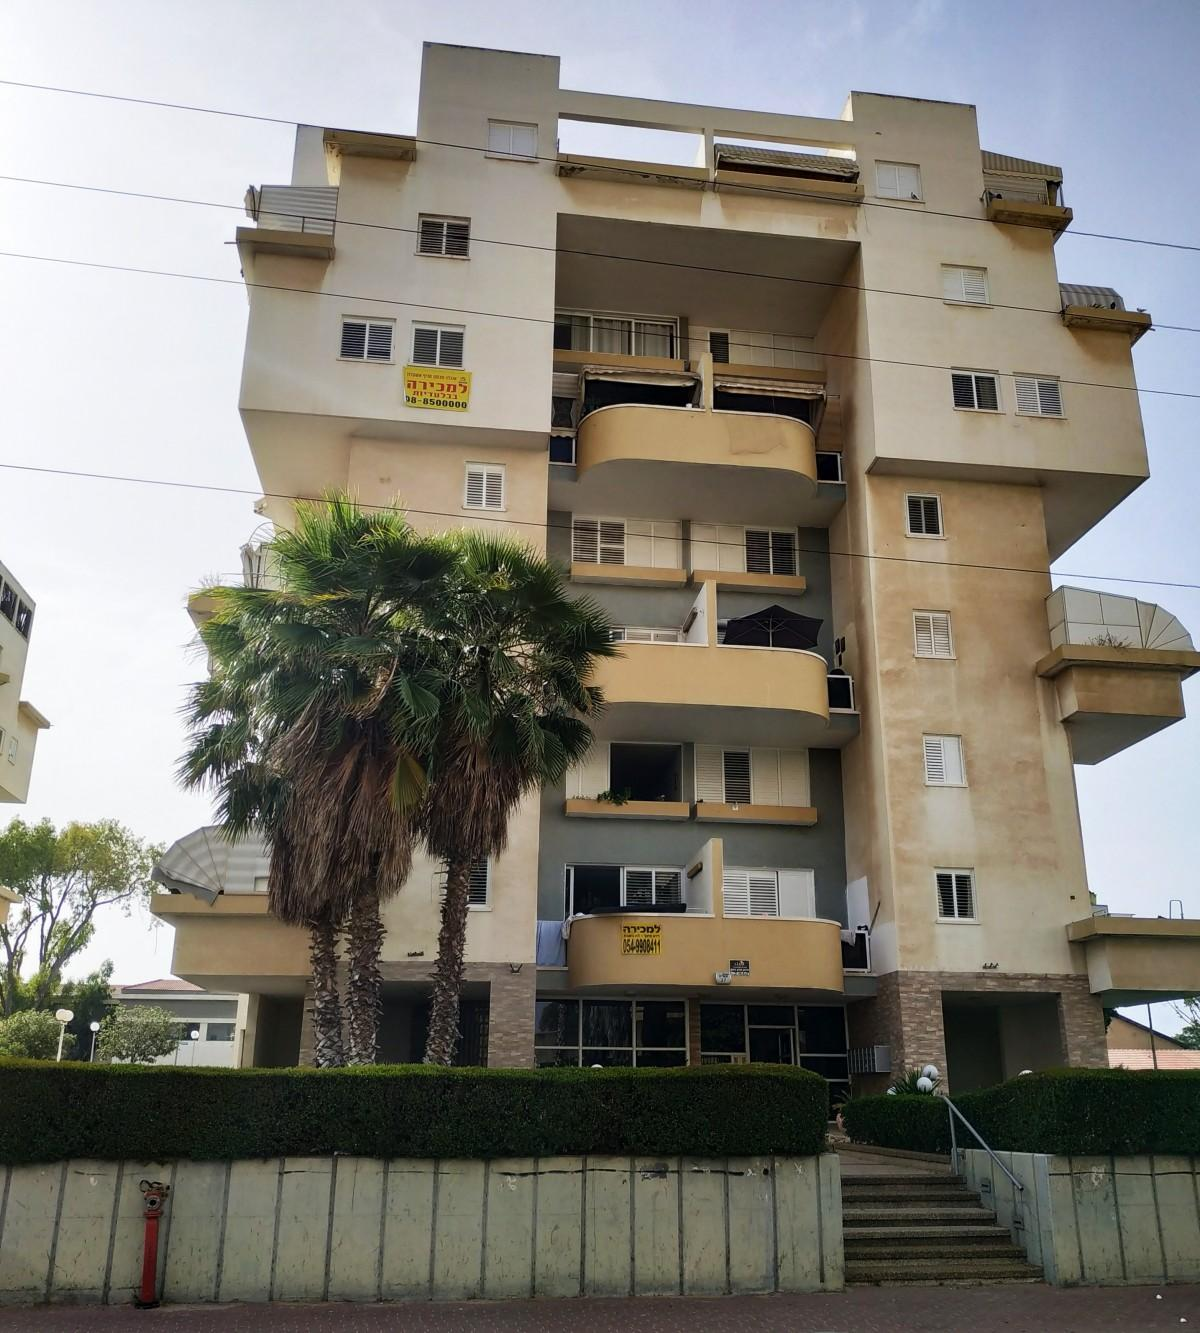 Apartment 5 Rooms in Ort Street, Ashkelon | Apartments for sale